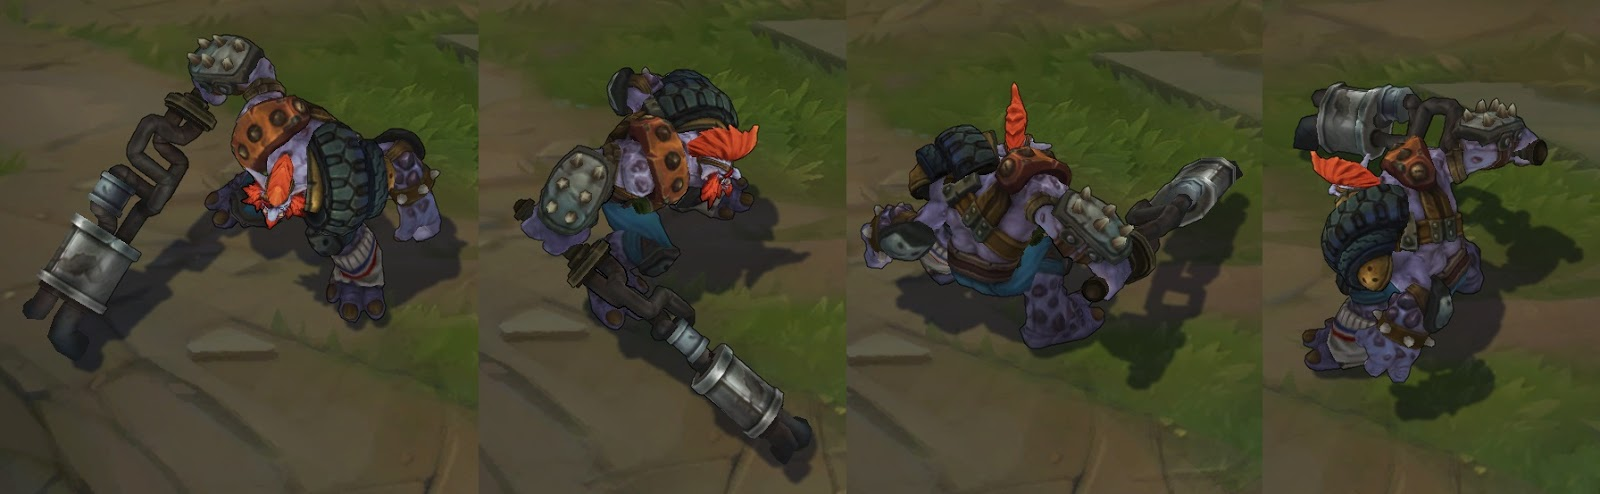 Surrender at 20: Champion and Skin Sale 10/16 - 10/19